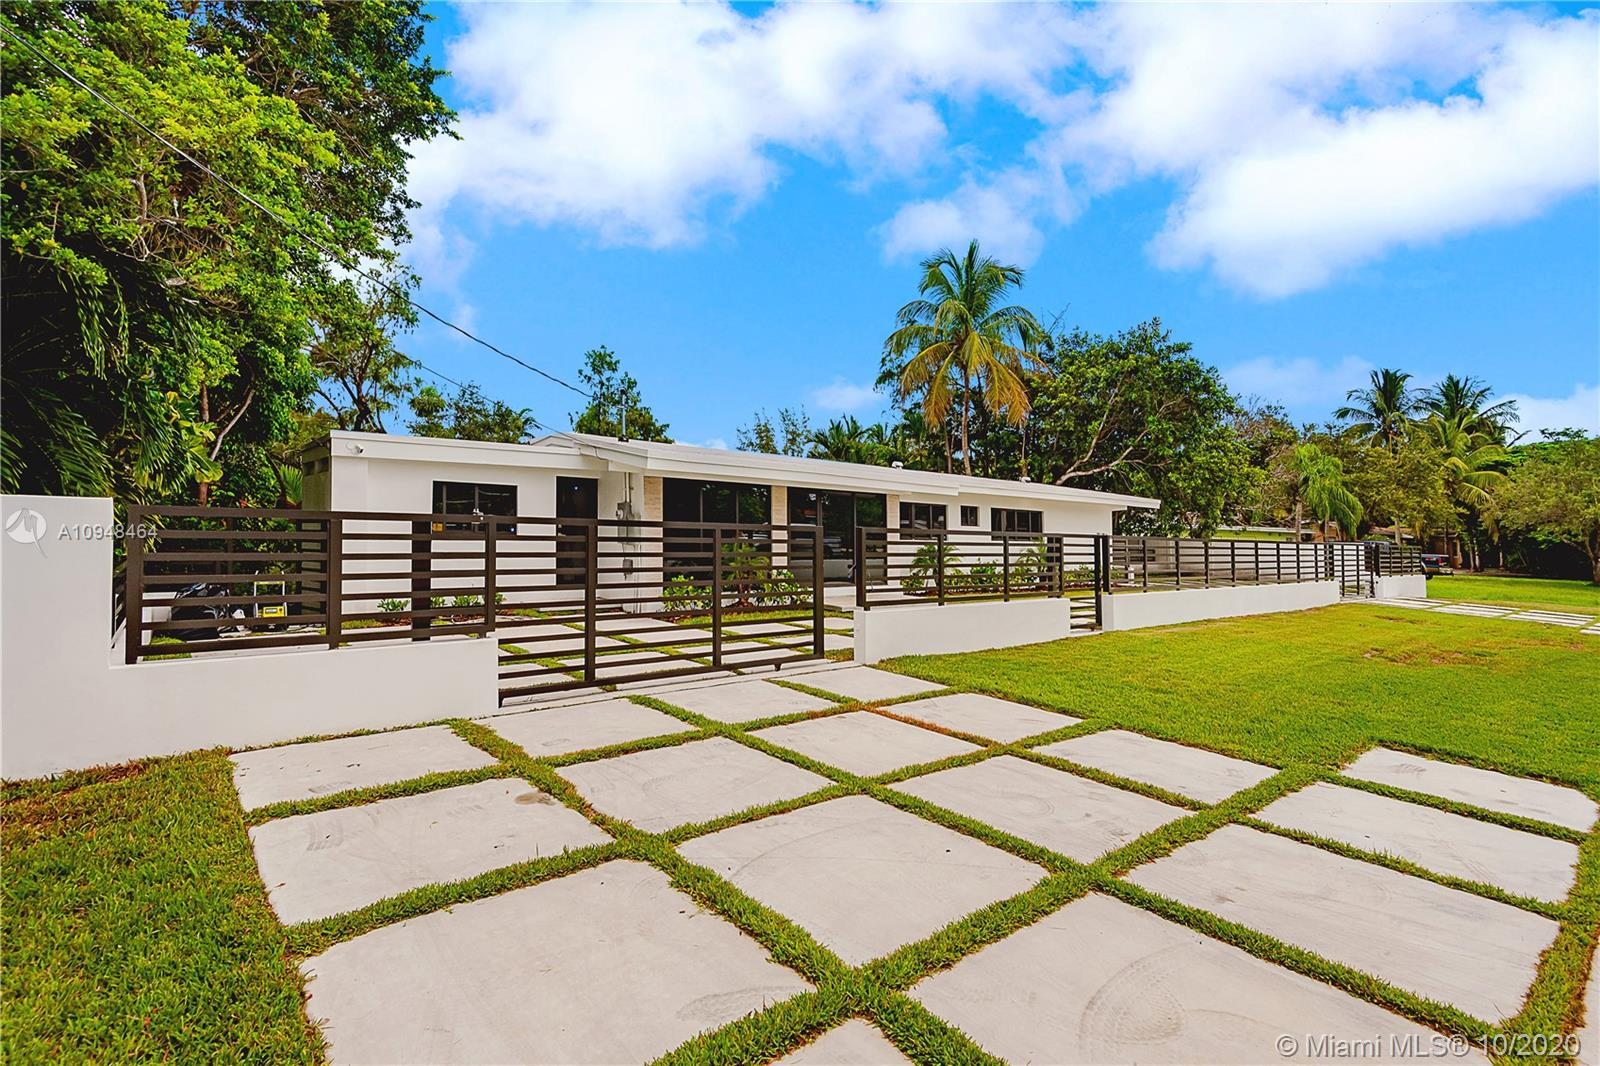 Completely remodeled to perfection.  This modern, sleek home offers everything new including plumbing, electrical, roof and impact windows and doors.  No costs spared, this 3 bedroom / 3.5 bath home boasts open spaces perfect for entertaining.  The elevated pool deck over looking the water and vegetation transports you to a place like no other in South Miami.  Ideally located and minutes away from the heart of South Miami, Downtown Dadeland and Coral Gables.